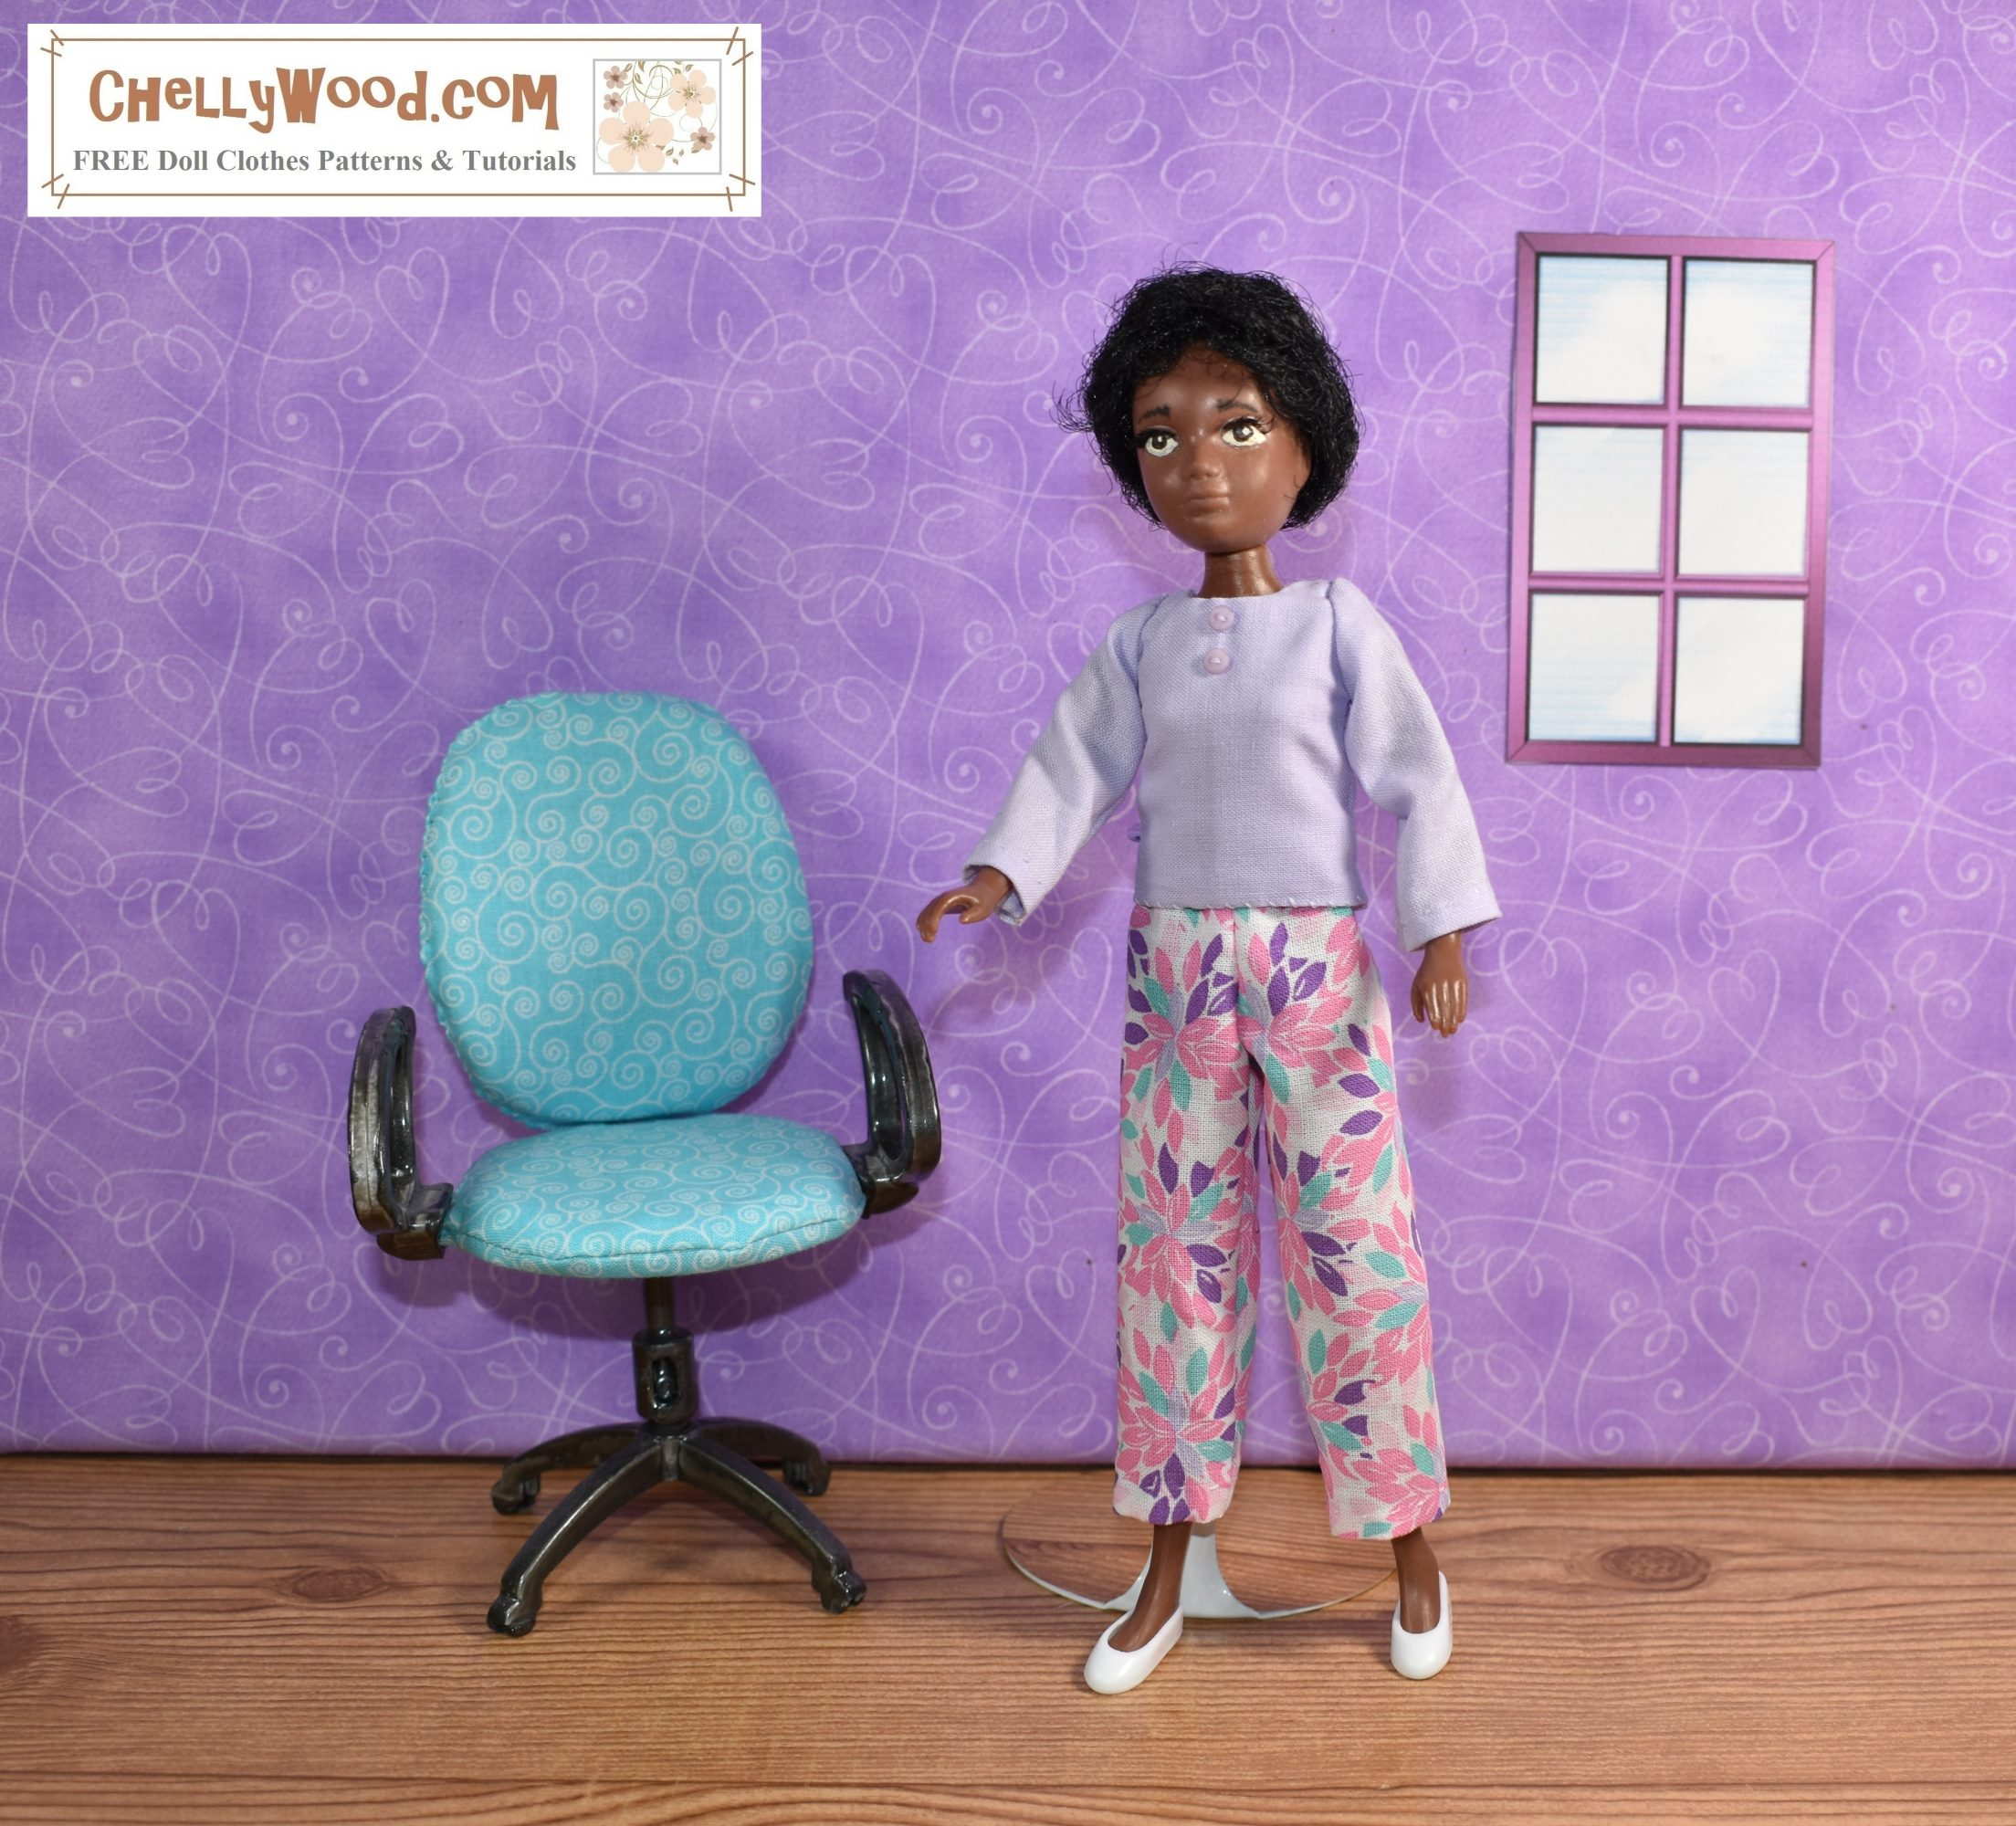 A World of Love Soul doll stands next to an office chair that has turquoise blue upholstery. Behind her, in the wall, is a tiny window on a purple-painted wall. The doll wears handmade floral ankle pants and a lavender long sleeved shirt with faux buttons down the front of the shirt. Her white plastic shoes sharply contrast the brown of the wooden floor.